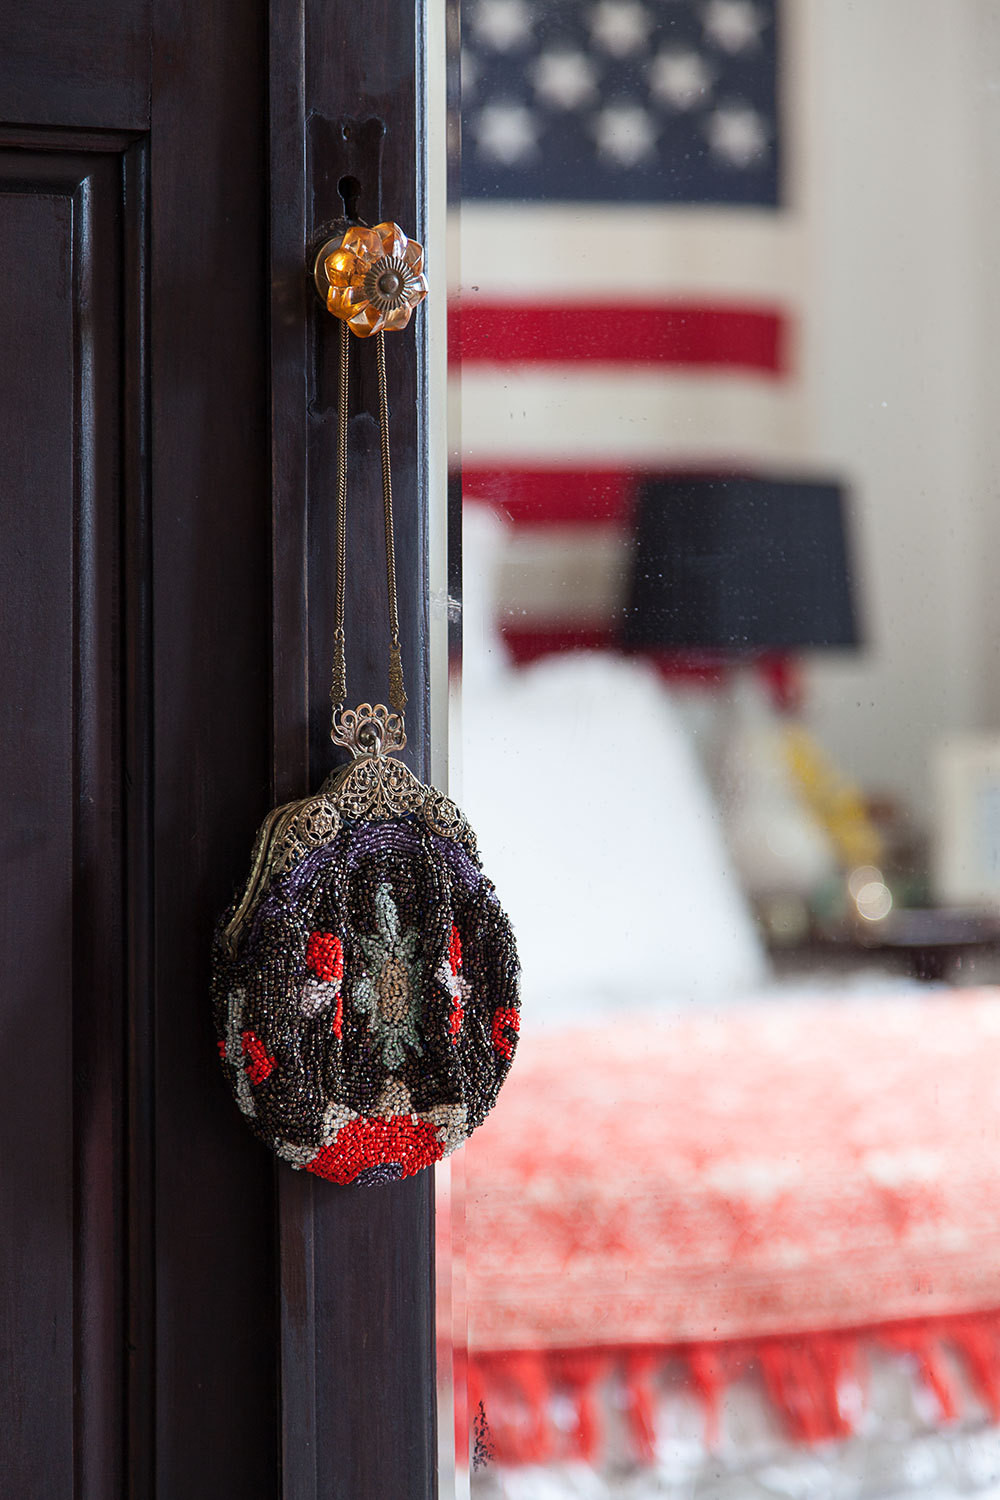 A delicate beaded handbag hangs from an amber-glass knob on the bedroom door.